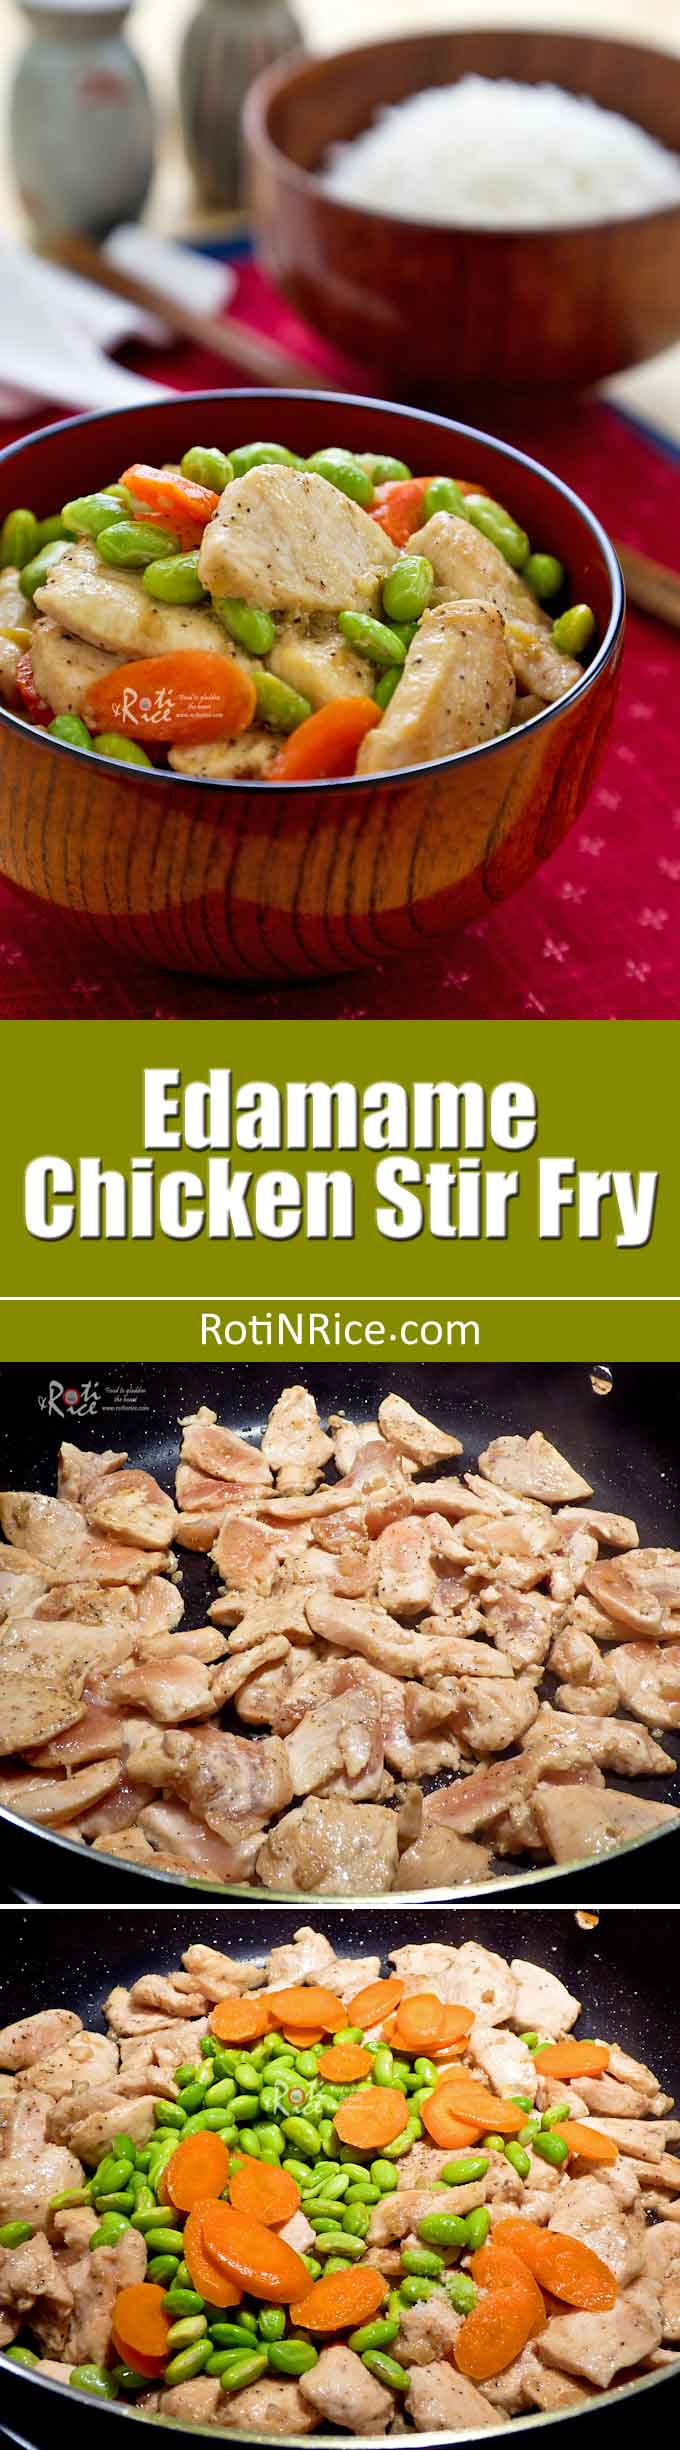 Quick and easy Edamame Chicken Stir Fry in under 30 minutes. Perfect for weeknights and delicious served with steamed rice. | RotiNRice.com